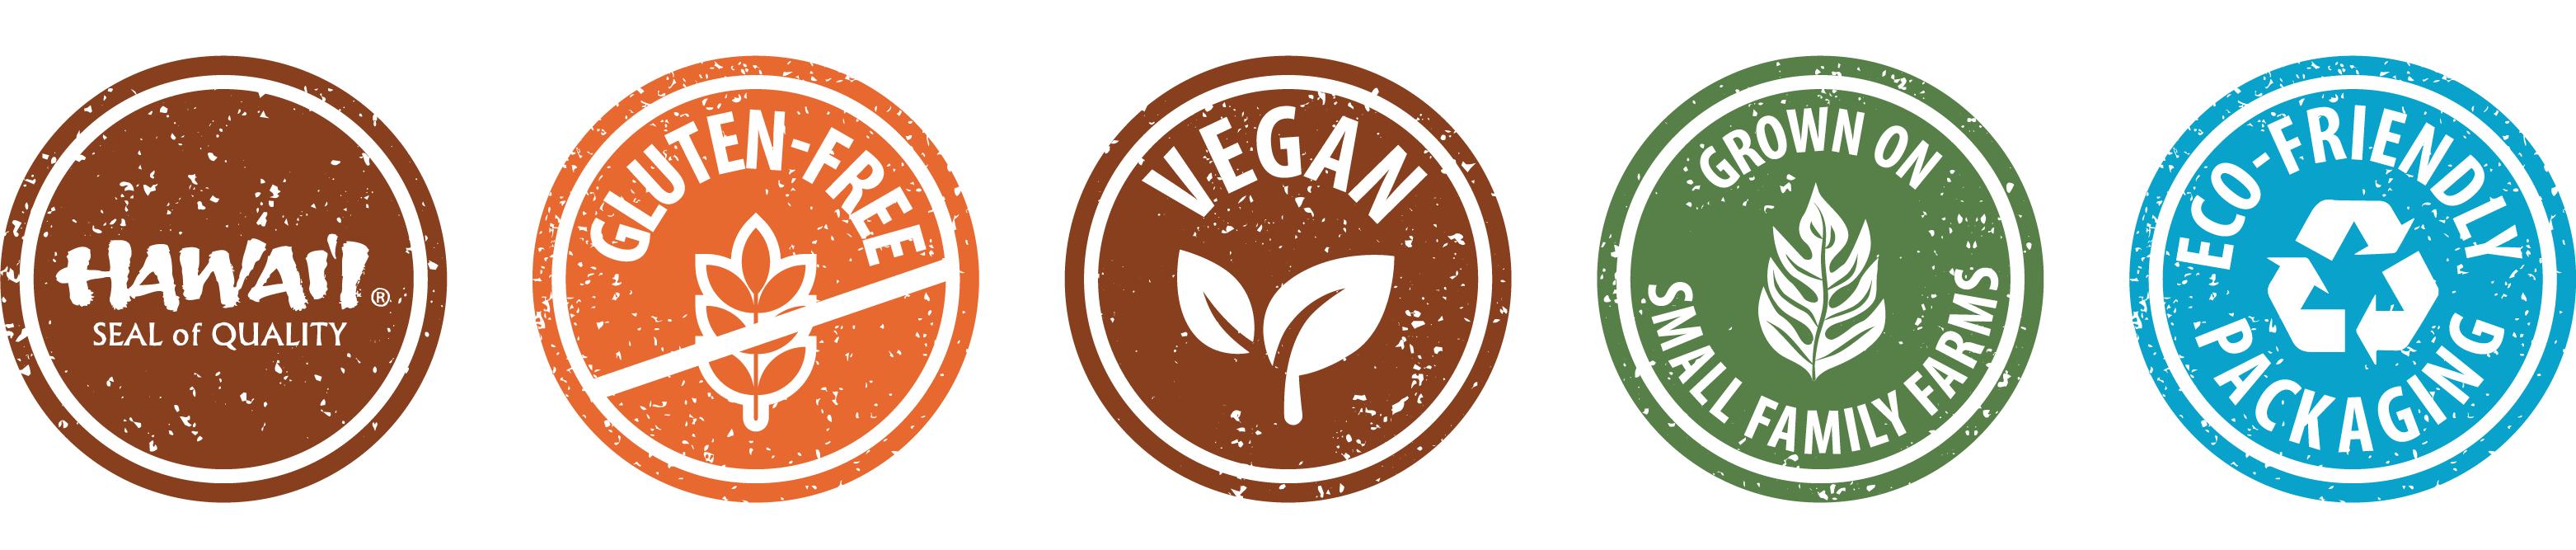 icons: hawaii seal of quality, gluten-free, vegan, grown on small family farms, eco-friendly packaging